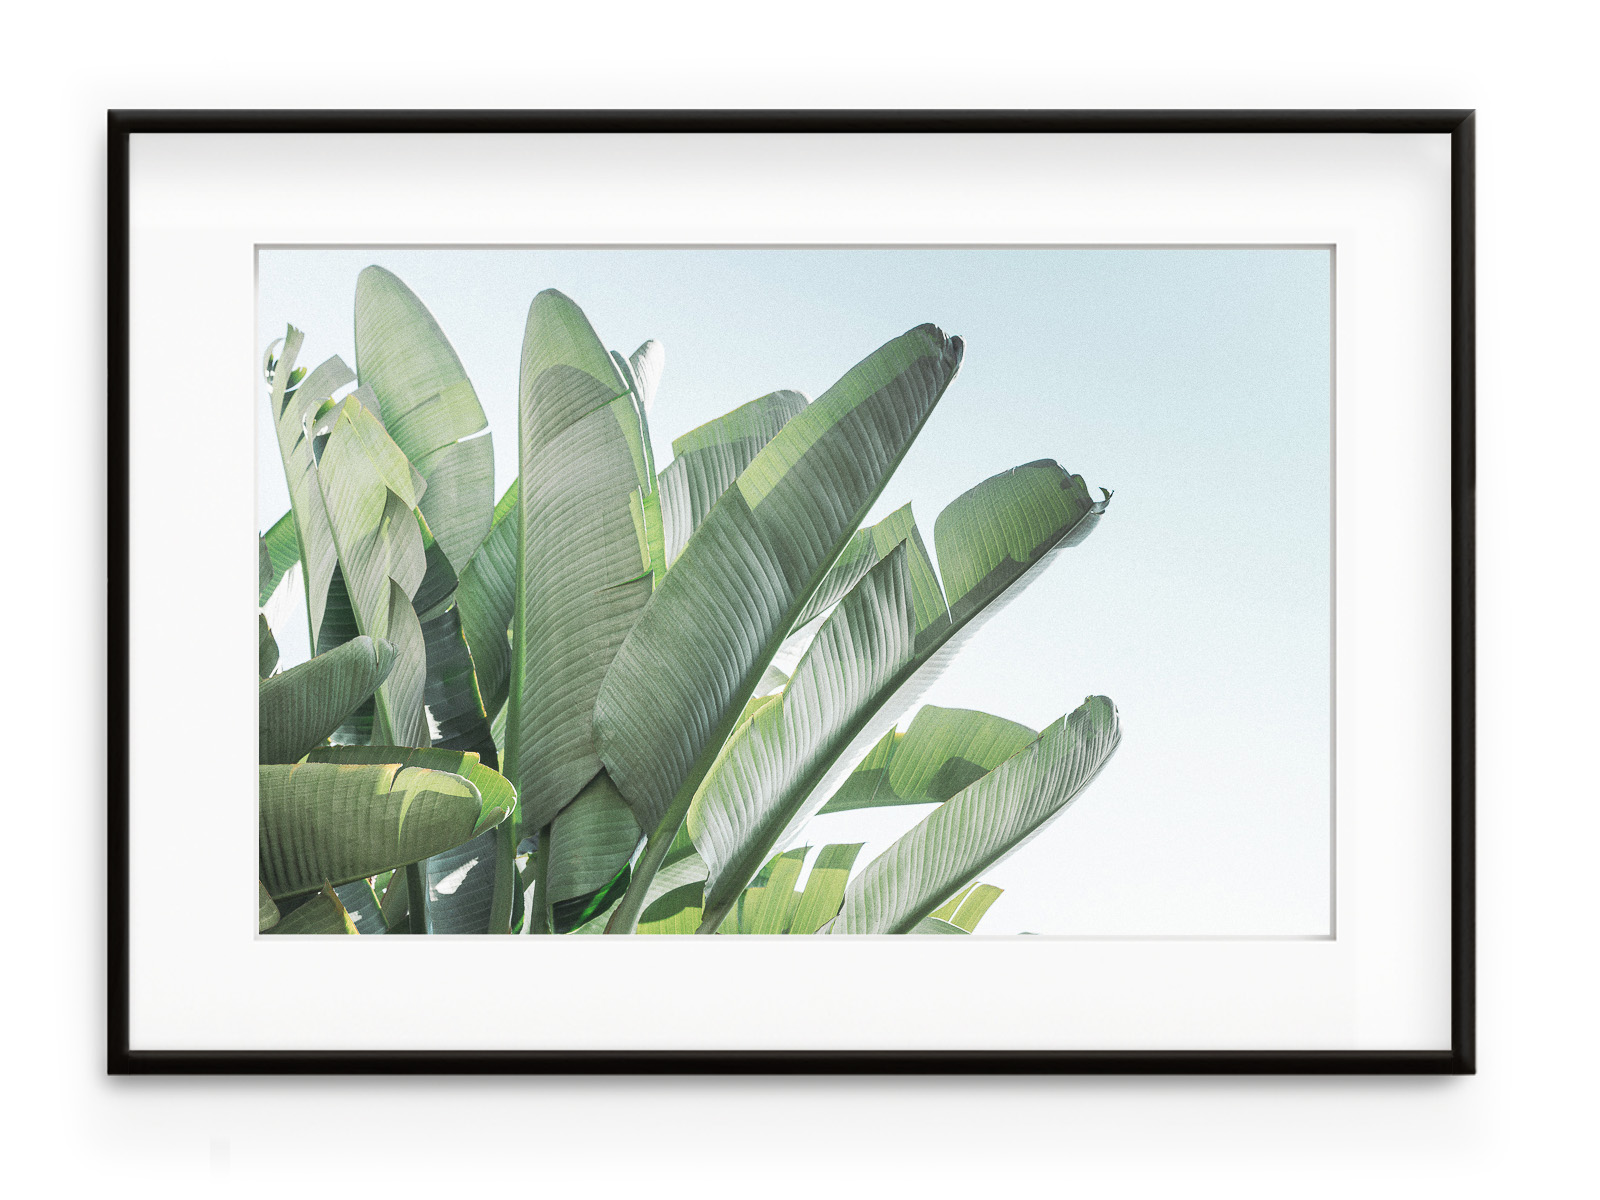 Tablou Banana Leaves II Aluminium Noir imagine